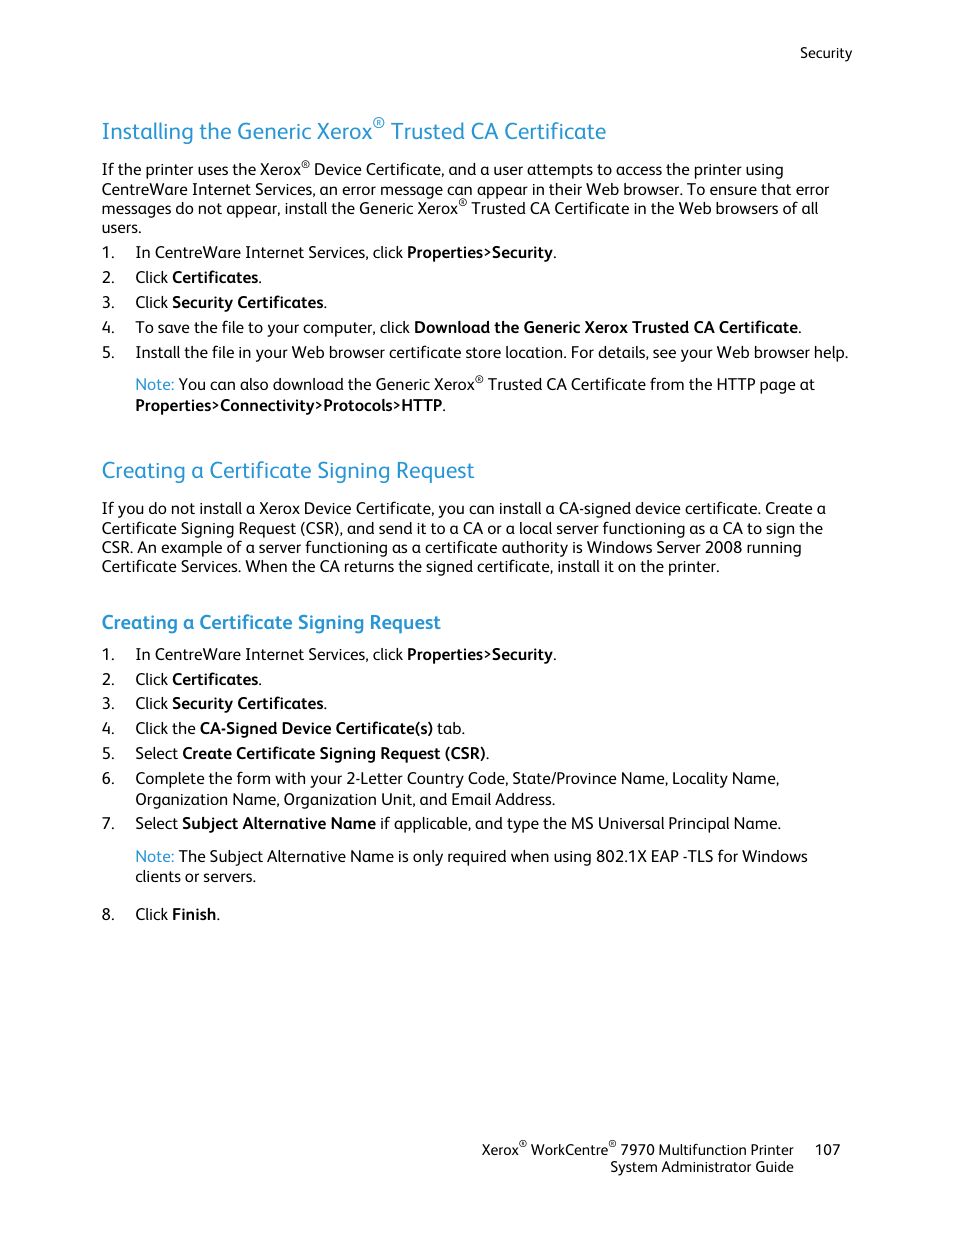 Creating a certificate signing request installing the generic creating a certificate signing request installing the generic xerox trusted ca certificate xerox workcentre 7970 2606 user manual page 107 268 xflitez Image collections